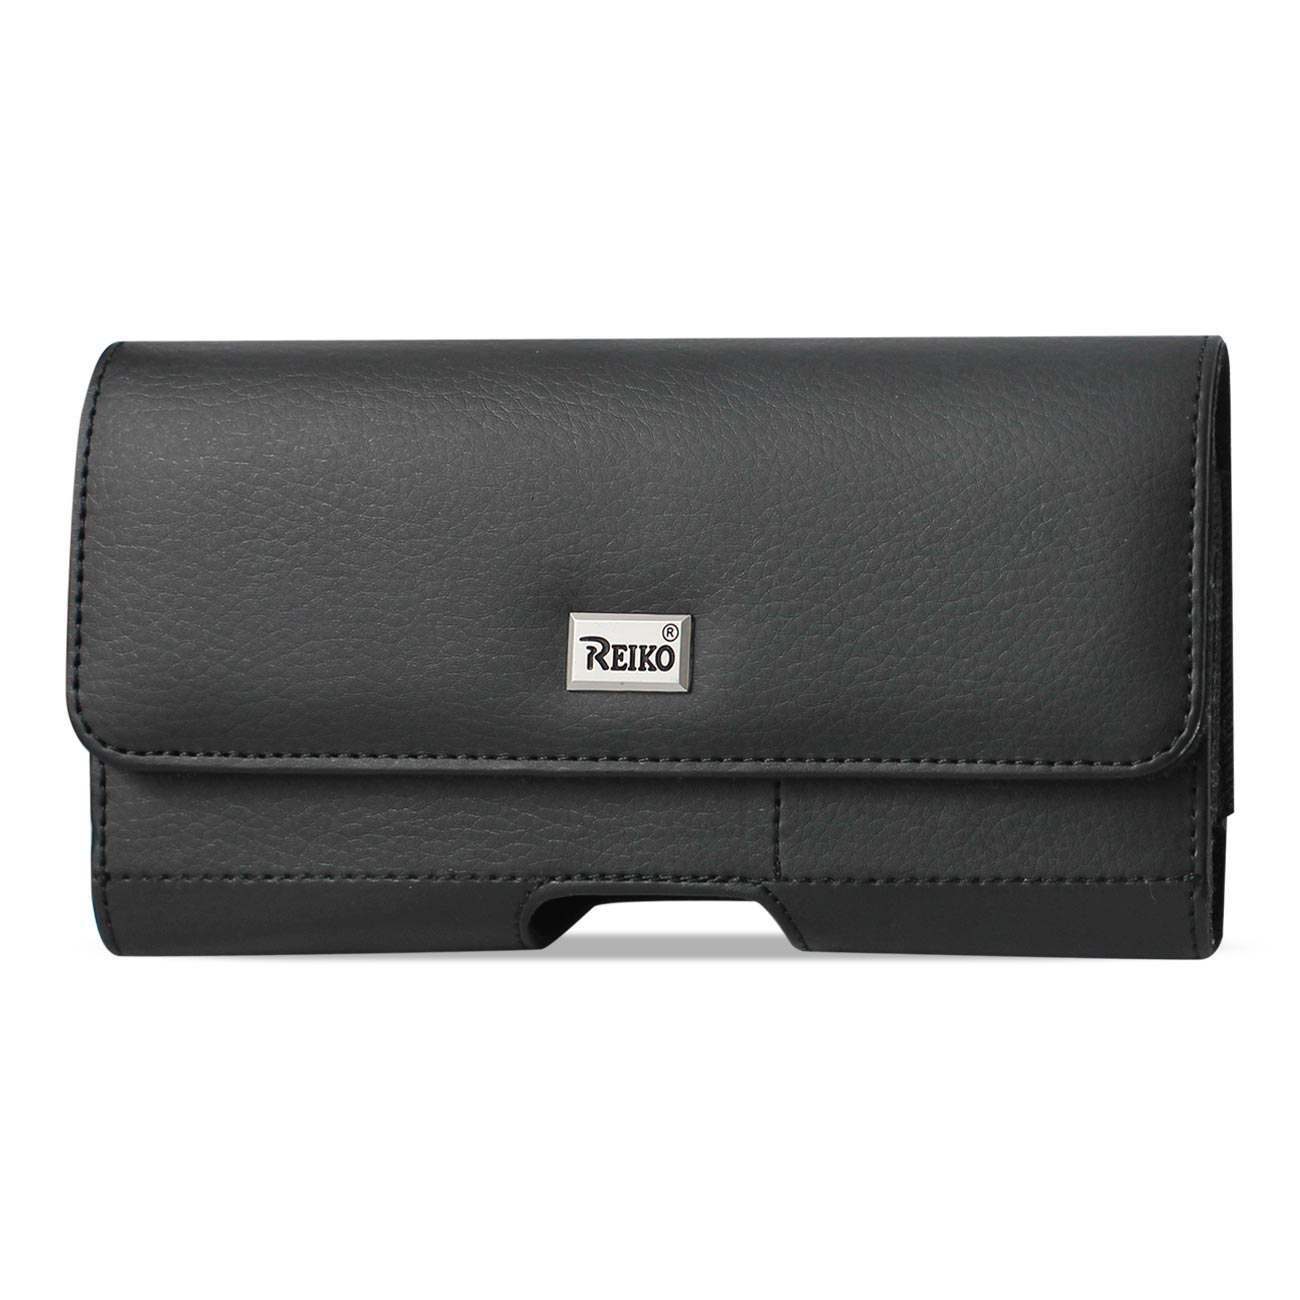 Horizontal Leather Pouch With Card Holder In Black (6.1X3.2X0.7 Inches)